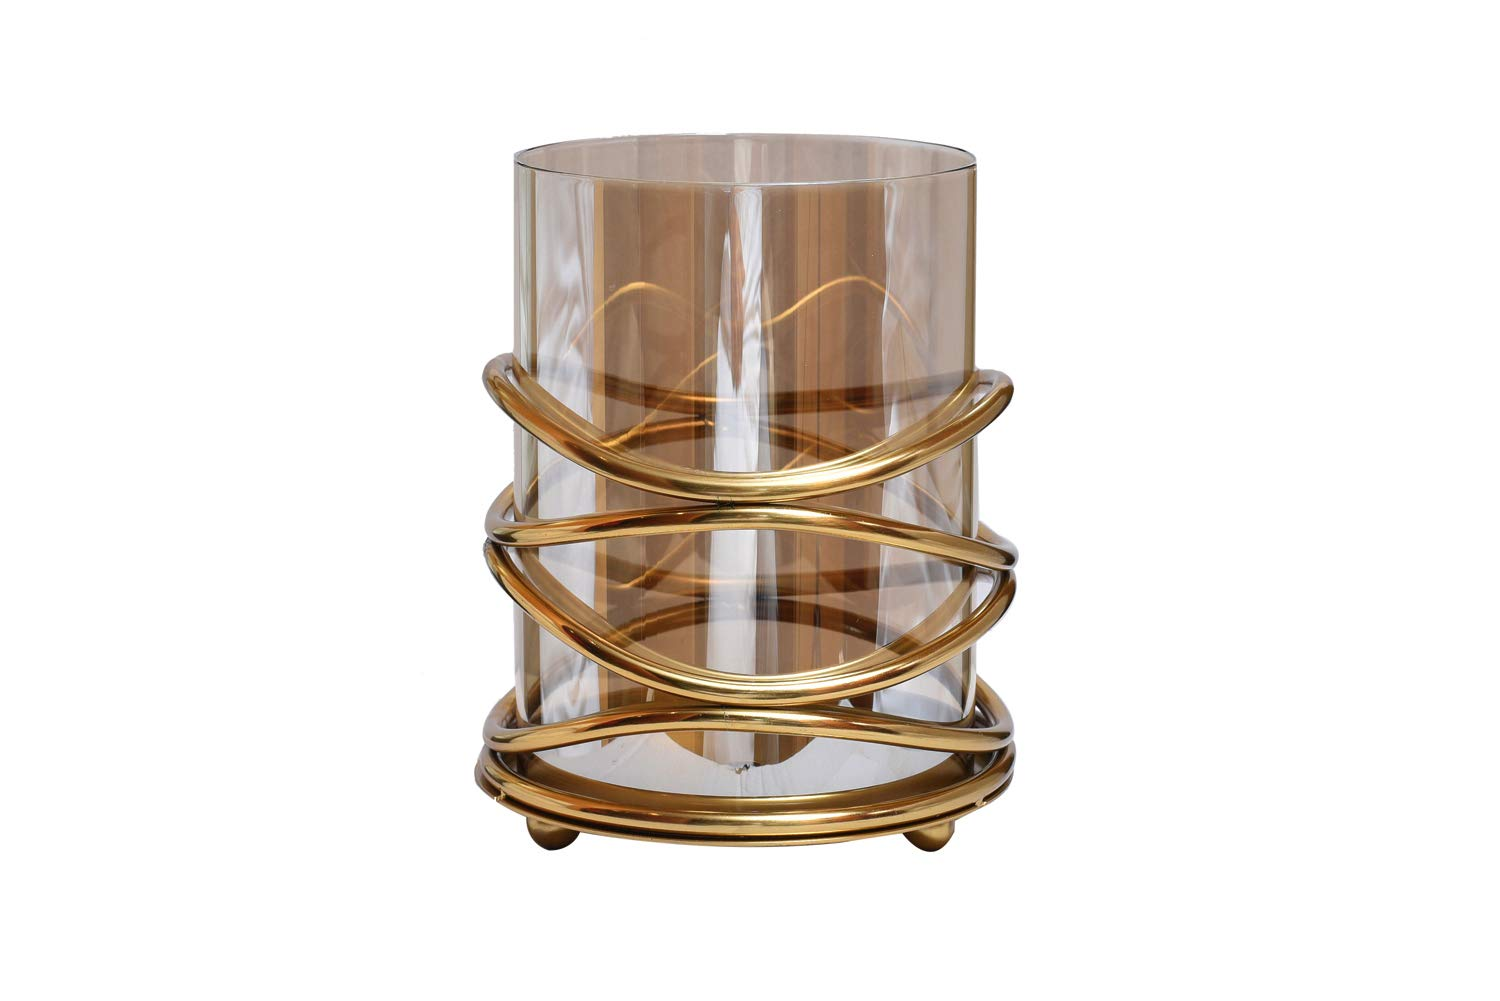 Decozen Metal and Glass Decorative Candle Holder in Swirl Design for Living Room Bed Room Center Table Side Tables Home Decor Accents by Decozen